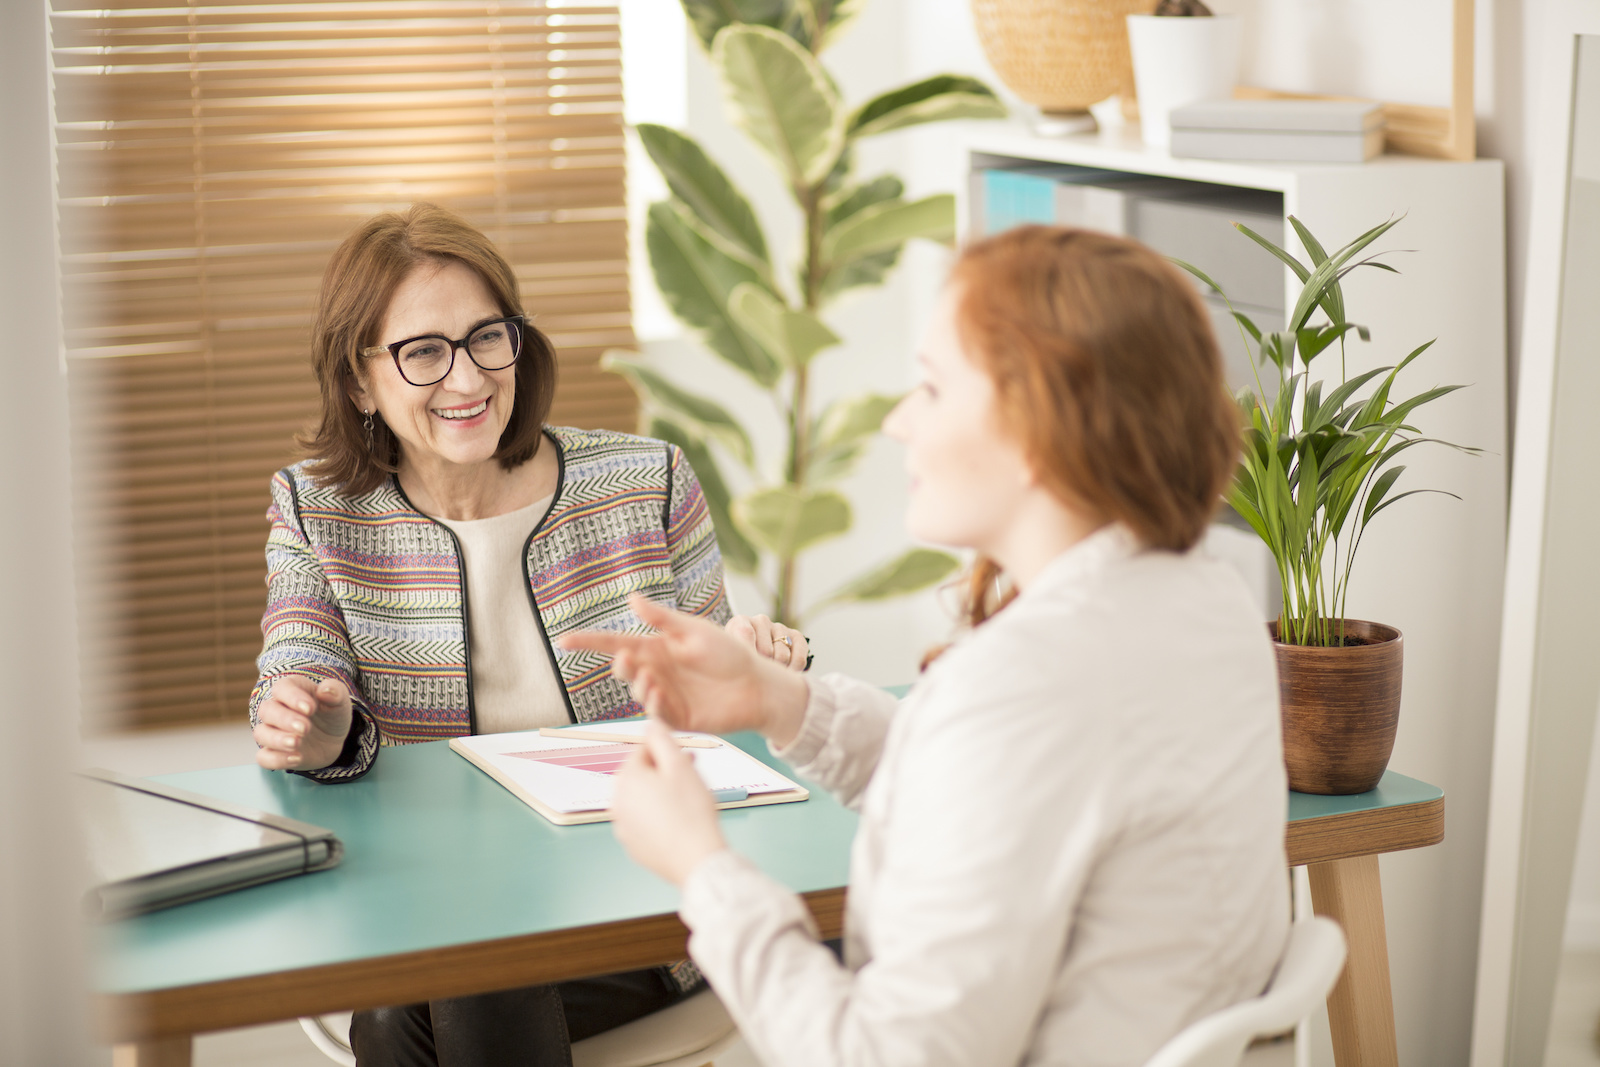 Best debt relief: A woman speaks with a financial advisor